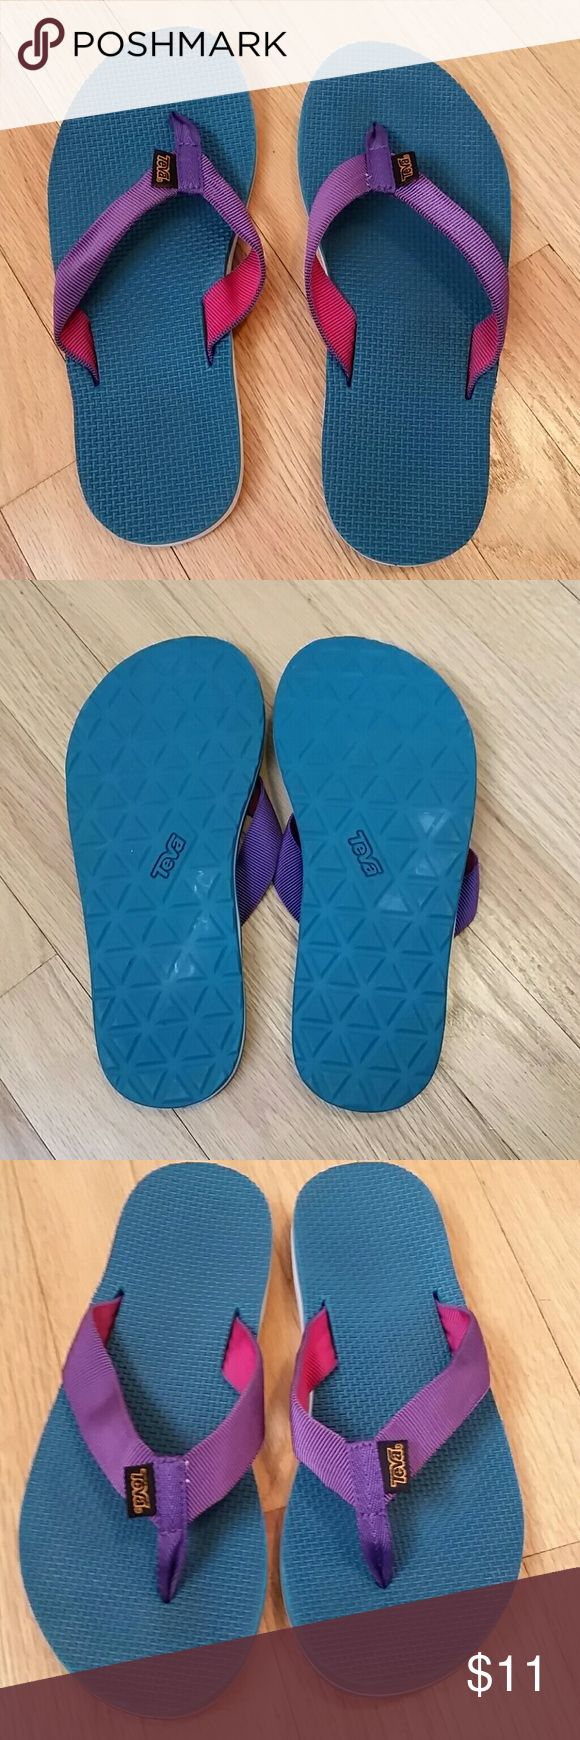 Teva flip flops Like new flip flops. Textured flop prevents slipping and sliding. Cute teal color with purple/pink straps. Slight scuff on right heel-see photos. I wear a 7.5 and my heel is almost hanging off. No size but I think it's a  6.5 or 7 fit. Teva Shoes Sandals